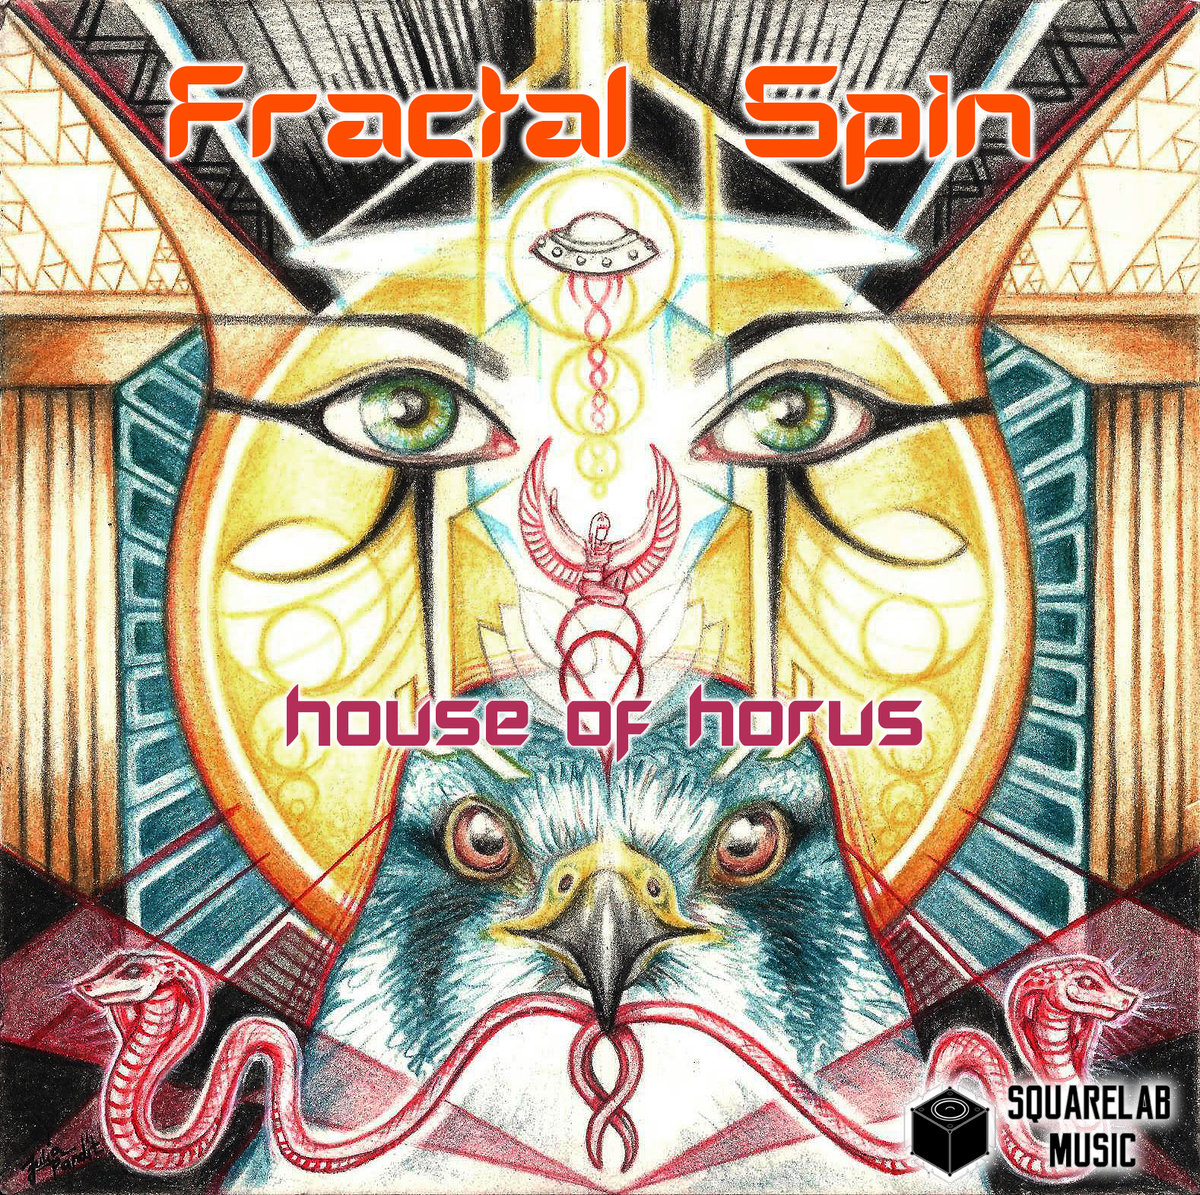 Fractal Spin - House of Horus (Squarelab music France) Mastering